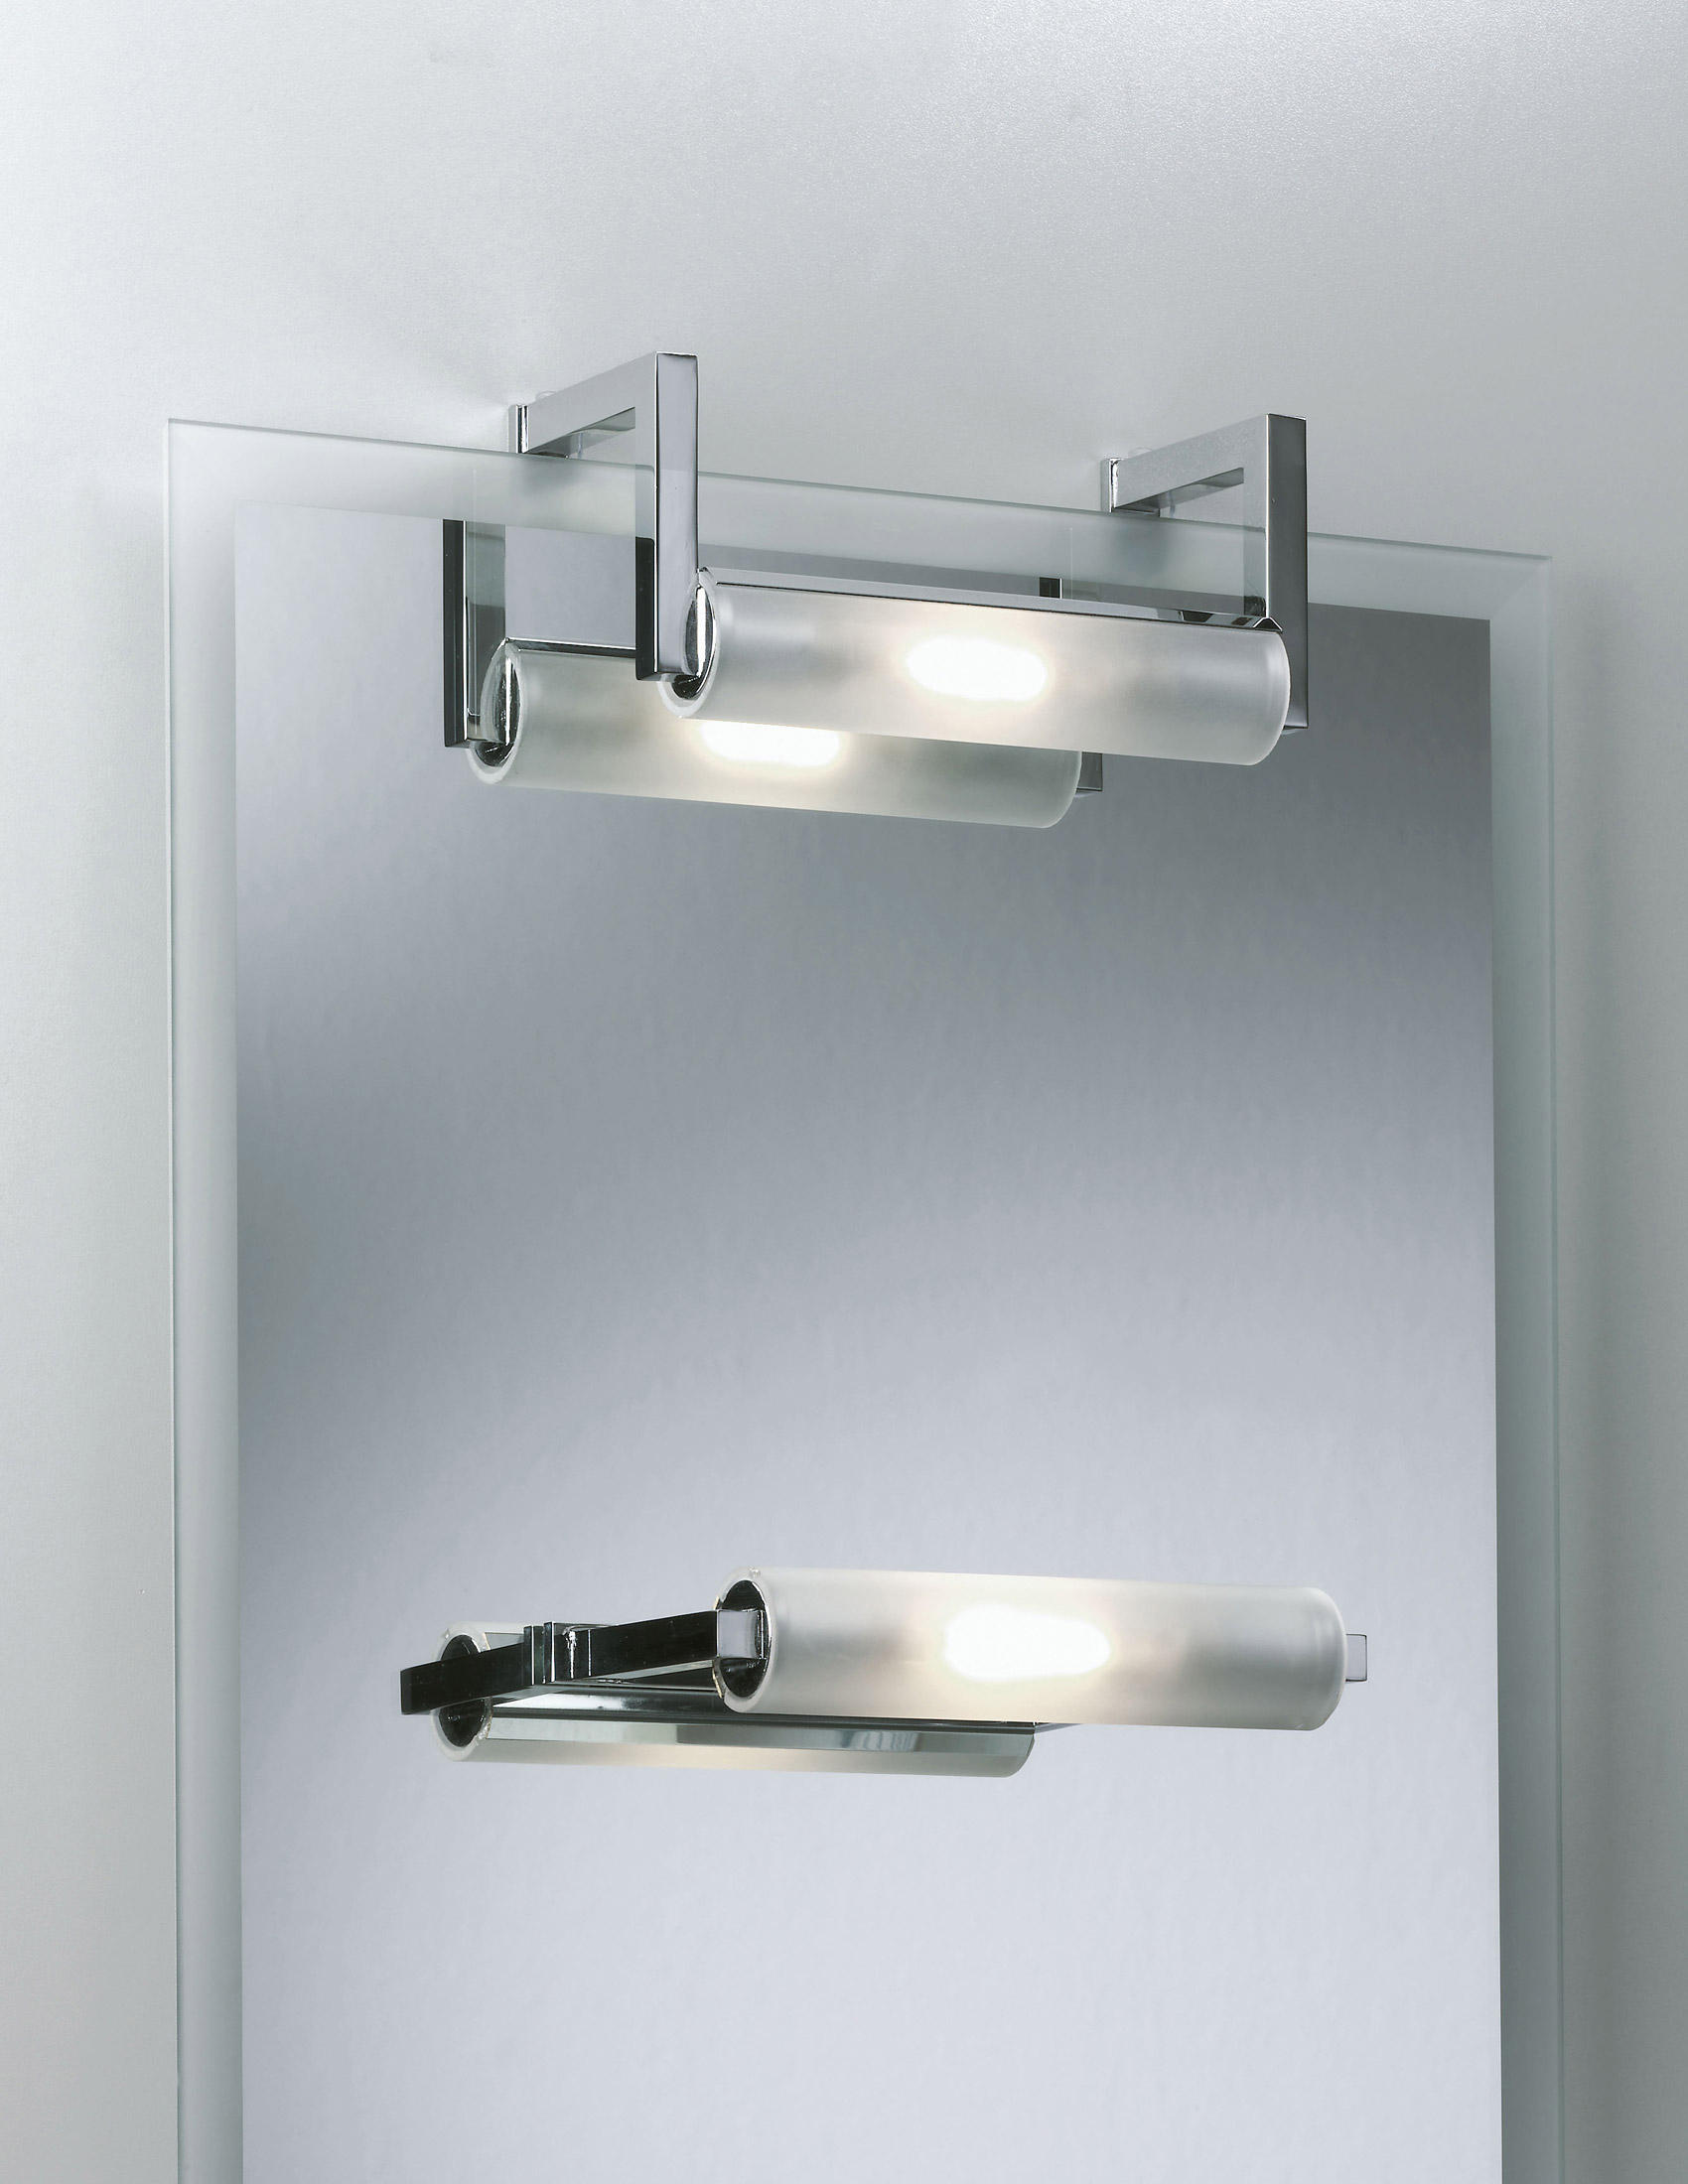 Stick 4 Bathroom Lighting From Decor Walther Architonic